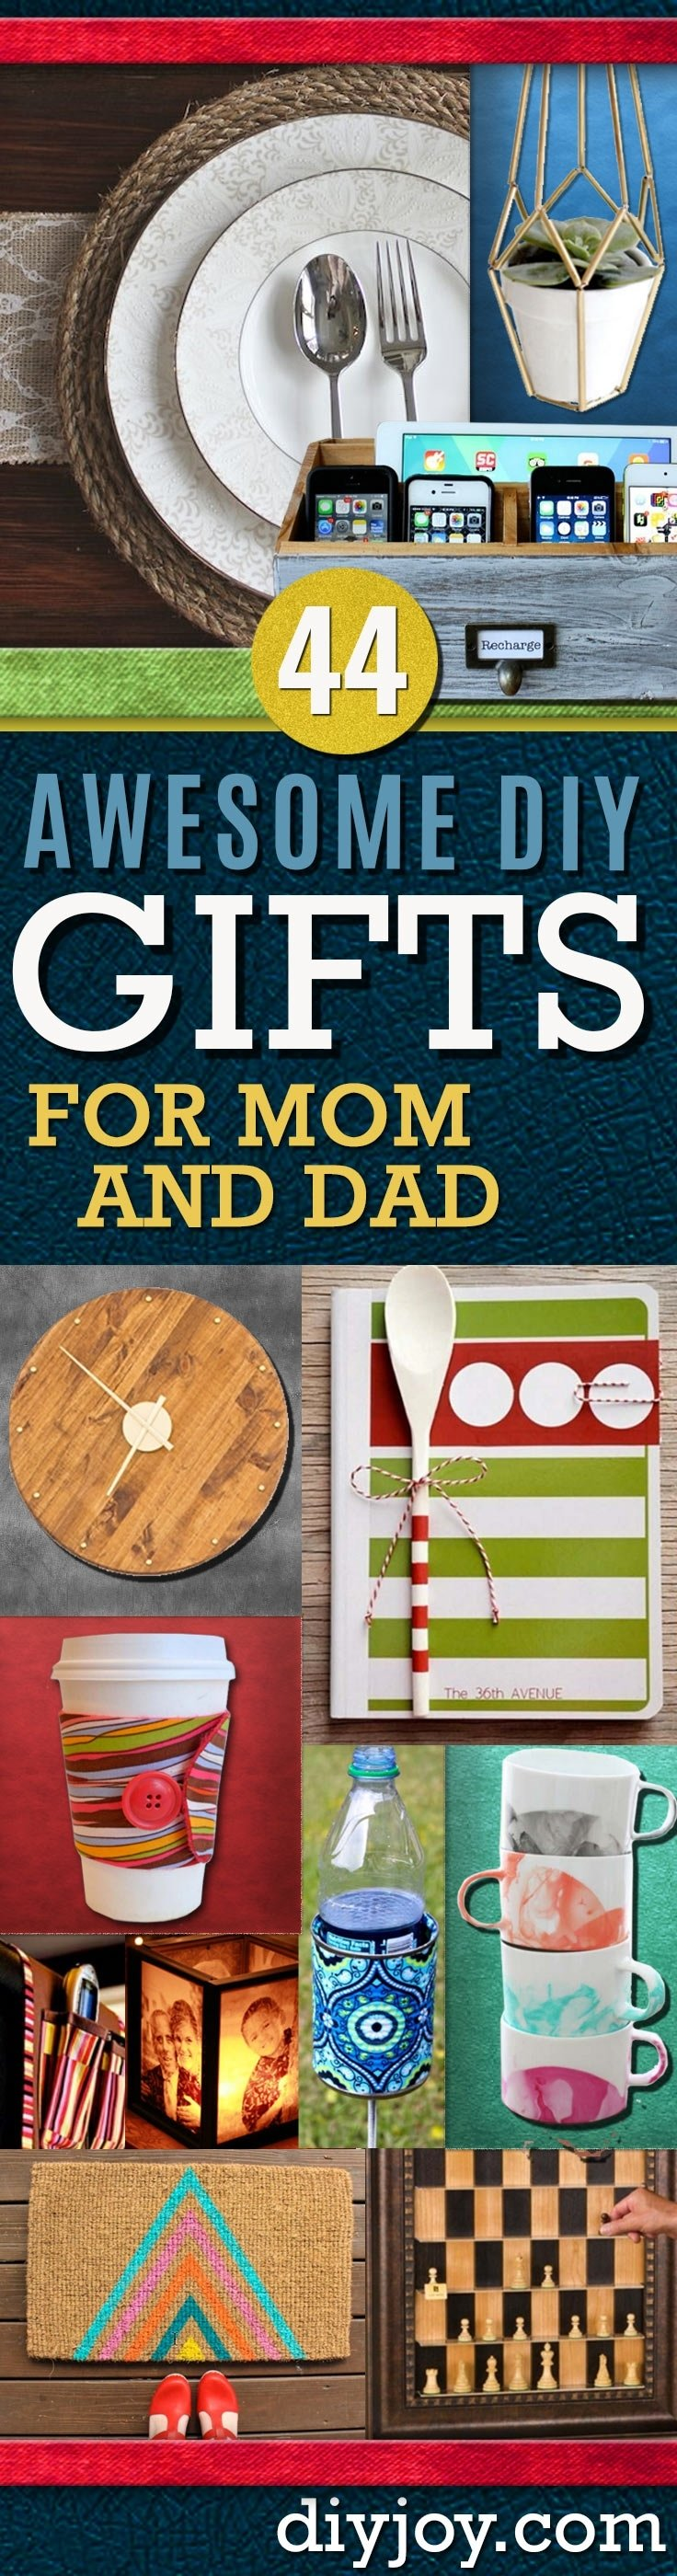 10 Attractive Gift Ideas For Dad For Christmas awesome diy gift ideas mom and dad will love 32 2020